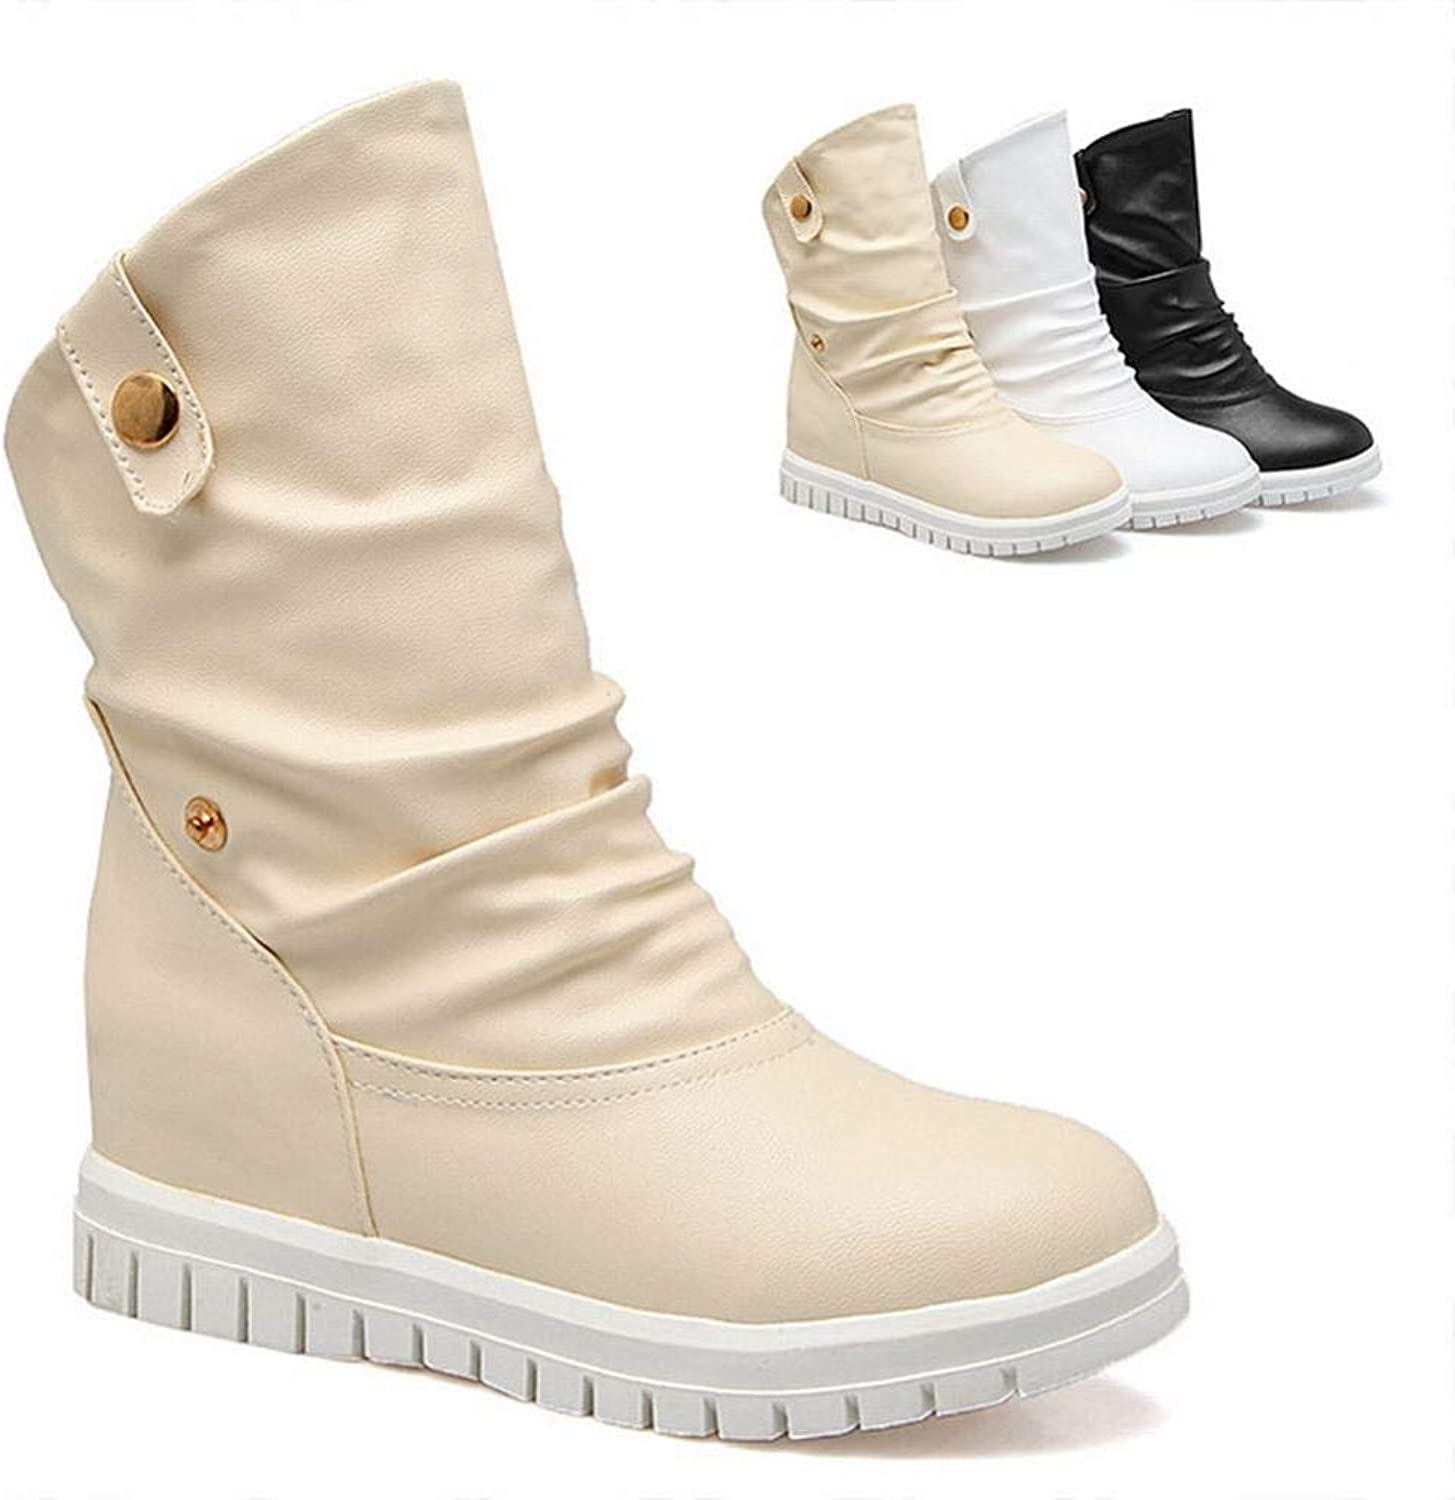 Women's shoes - High Boots in Autumn and Winter British Low Heel Warm Boots Flat Boots 34-43